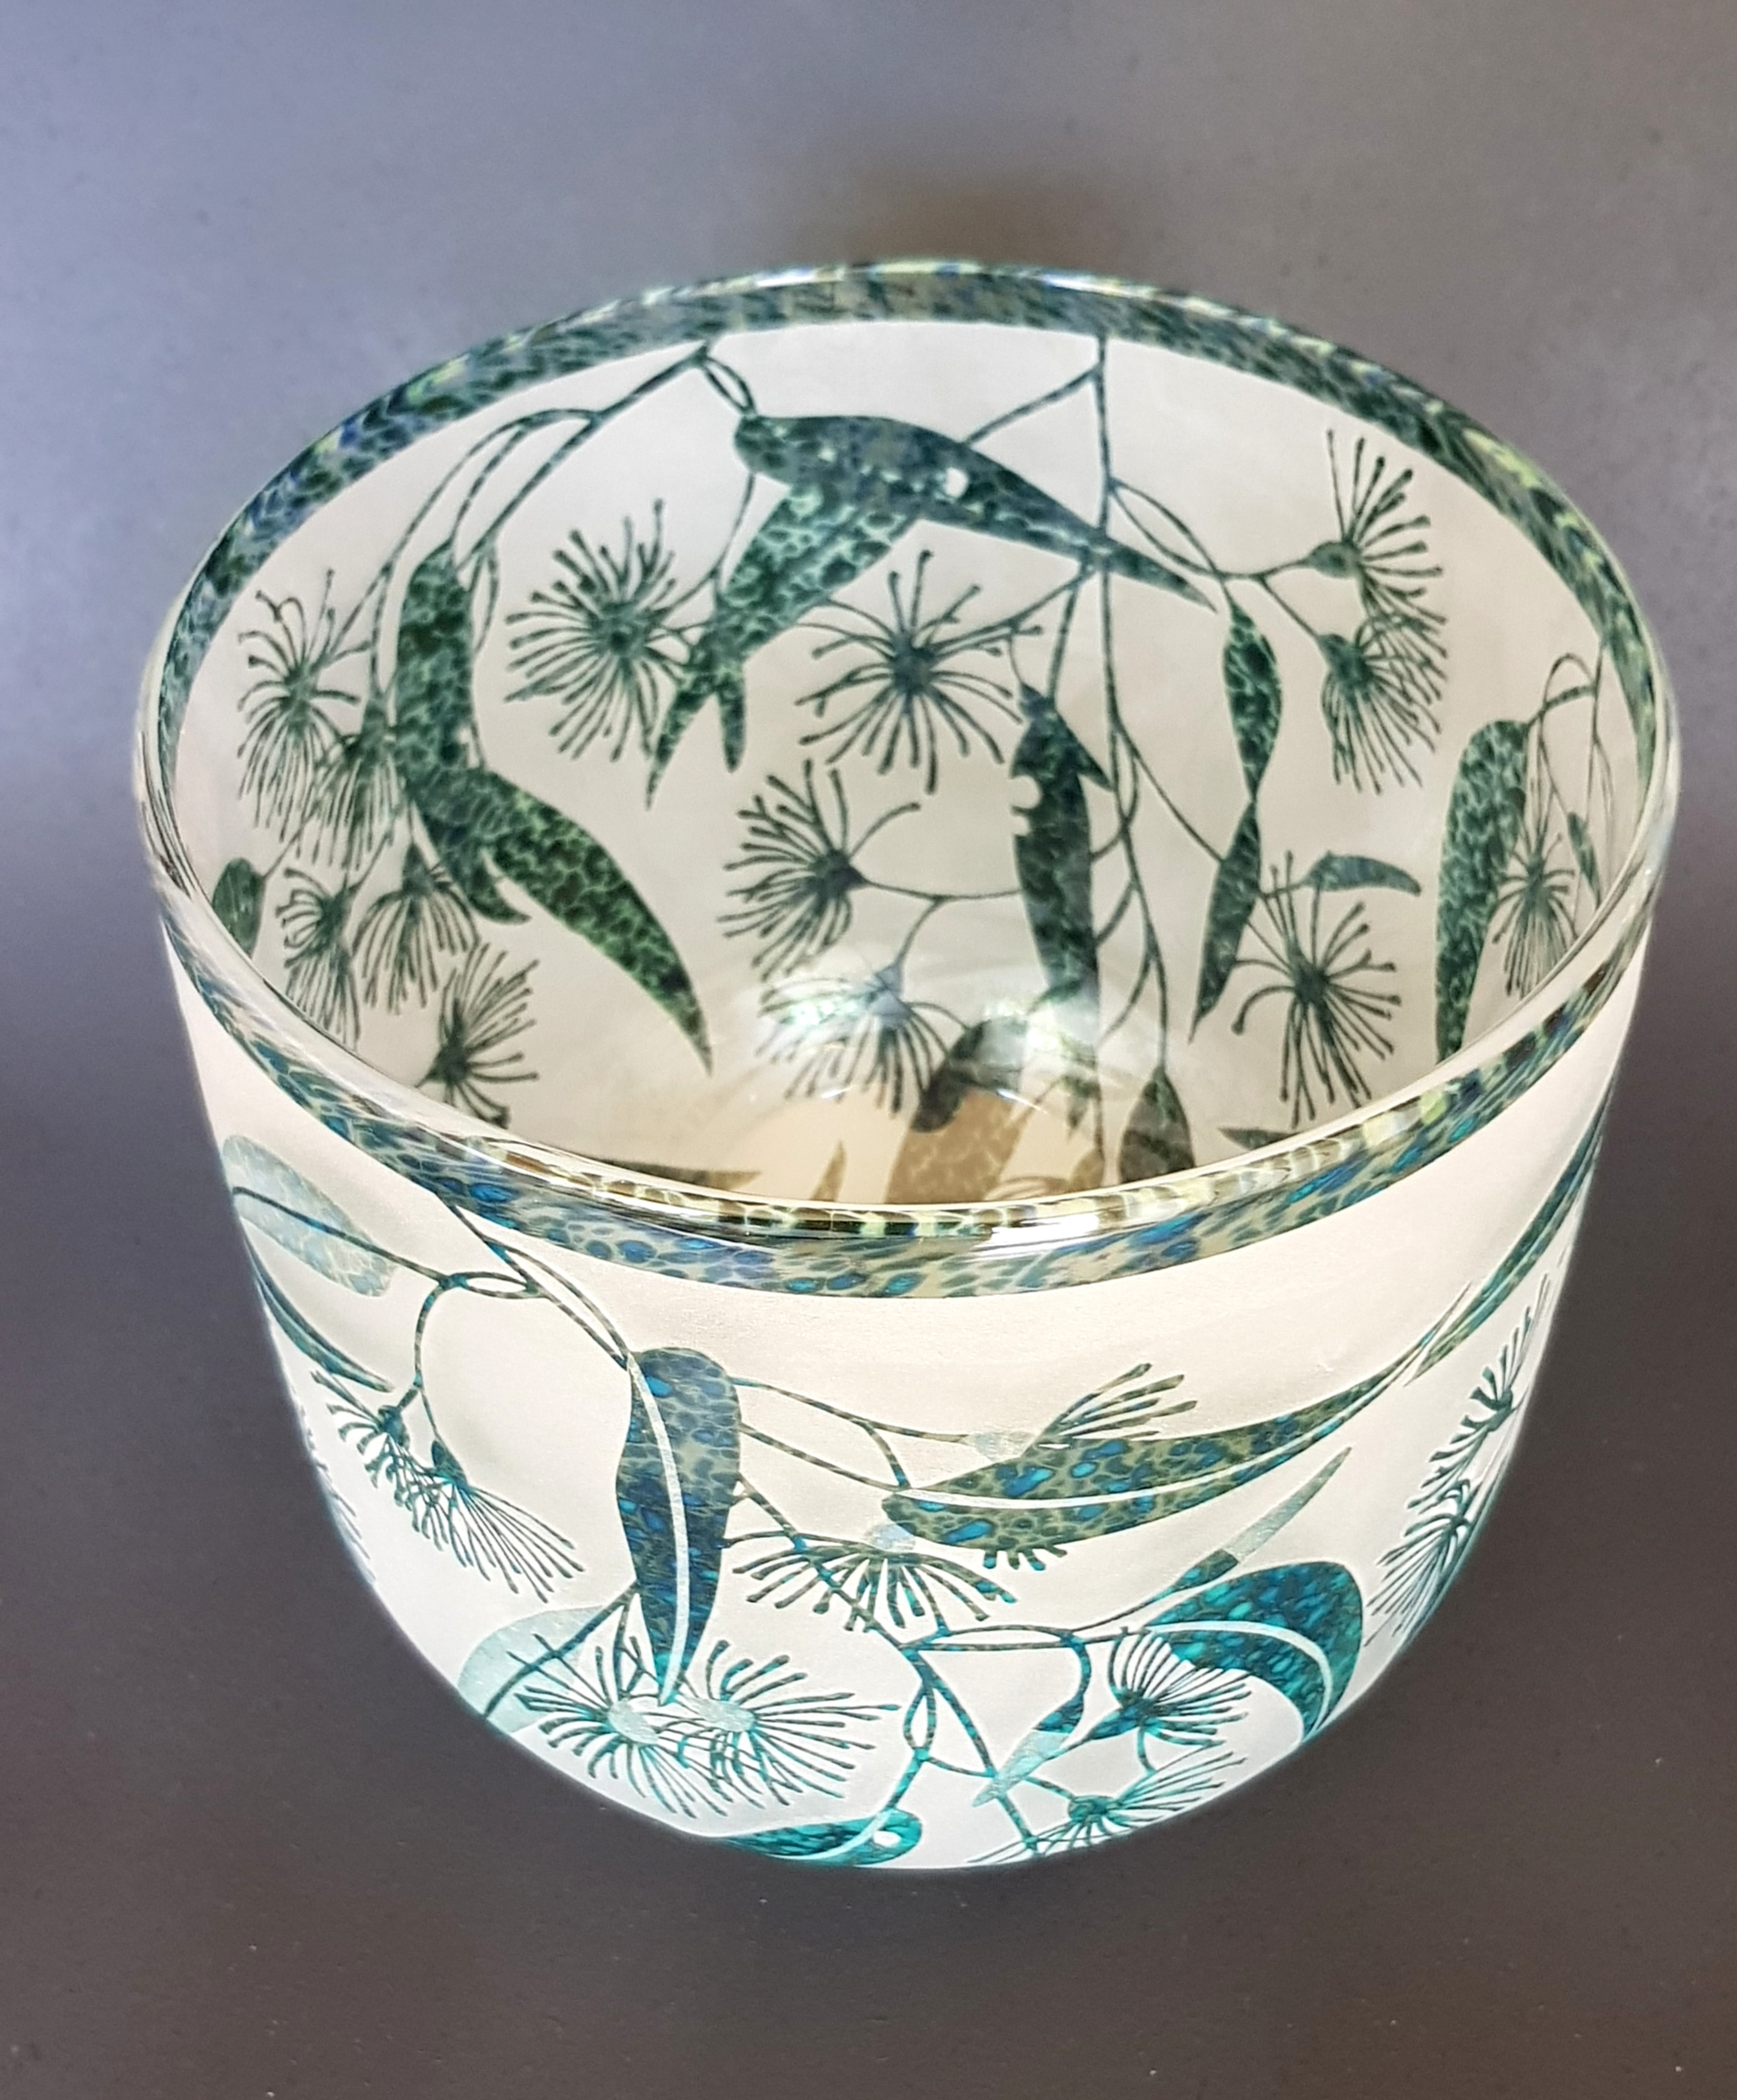 Flowering gum bowl by Amanda Louden. Blown and etched glass. H 16.5cm x W 18cm